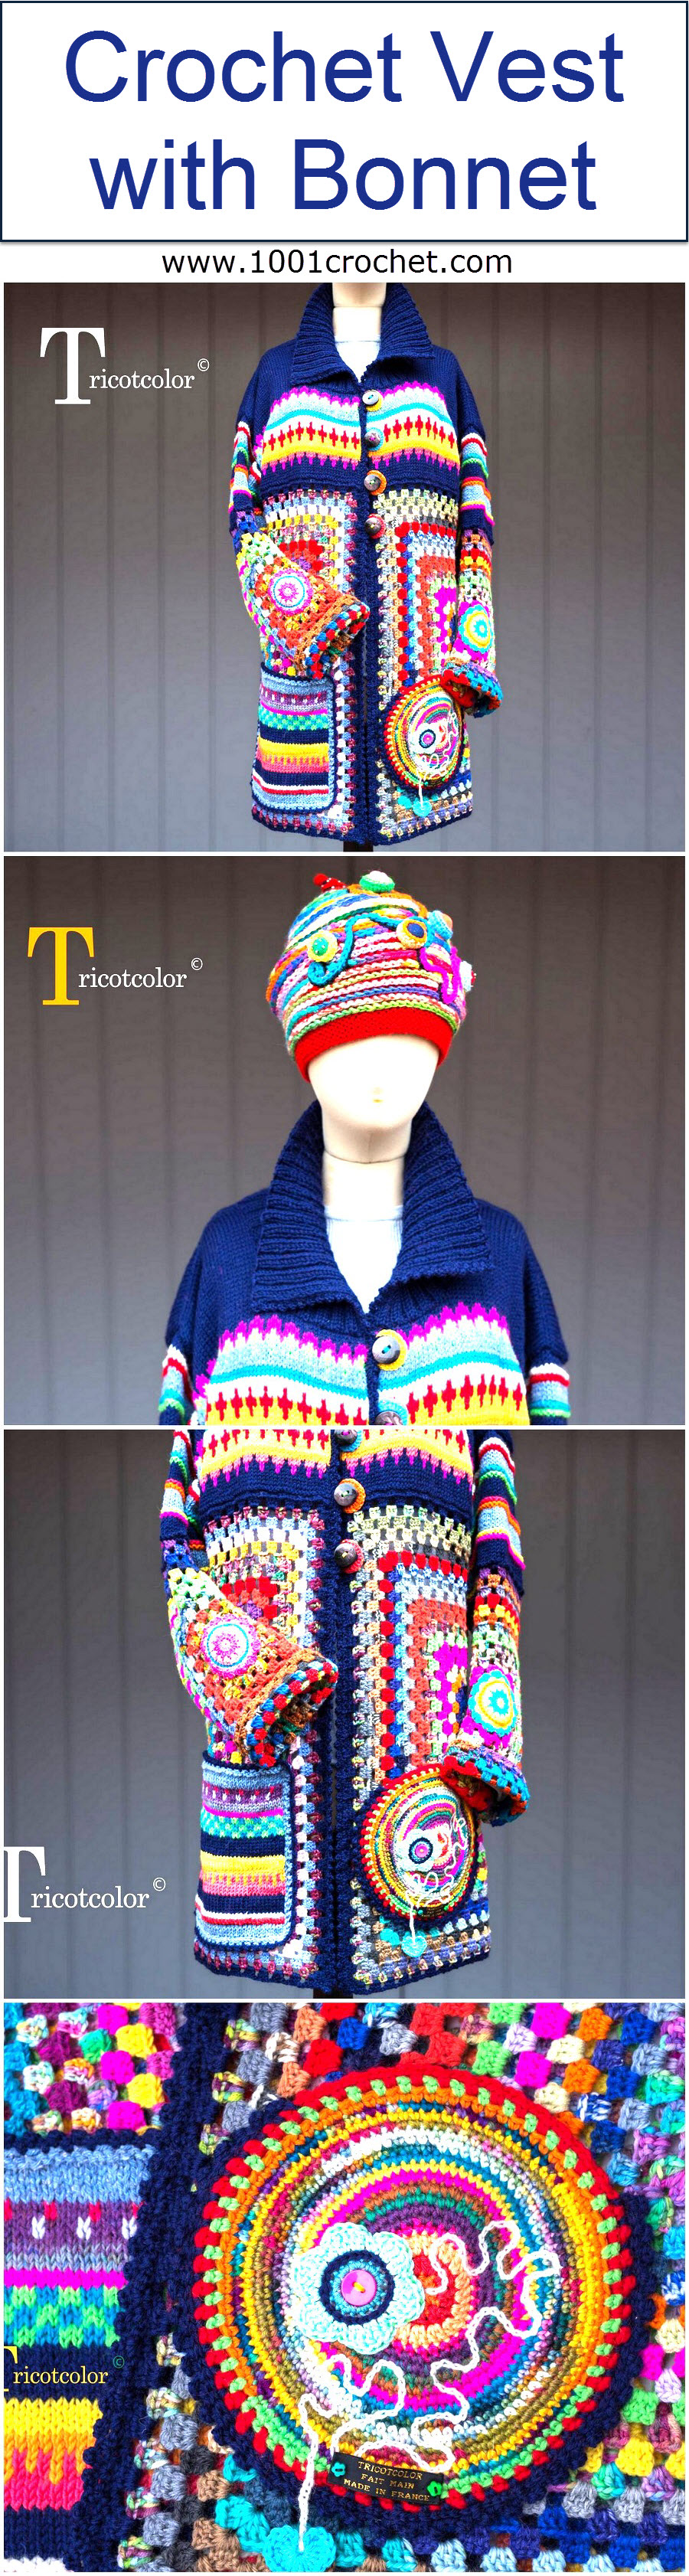 crochet-vest-with-bonnet